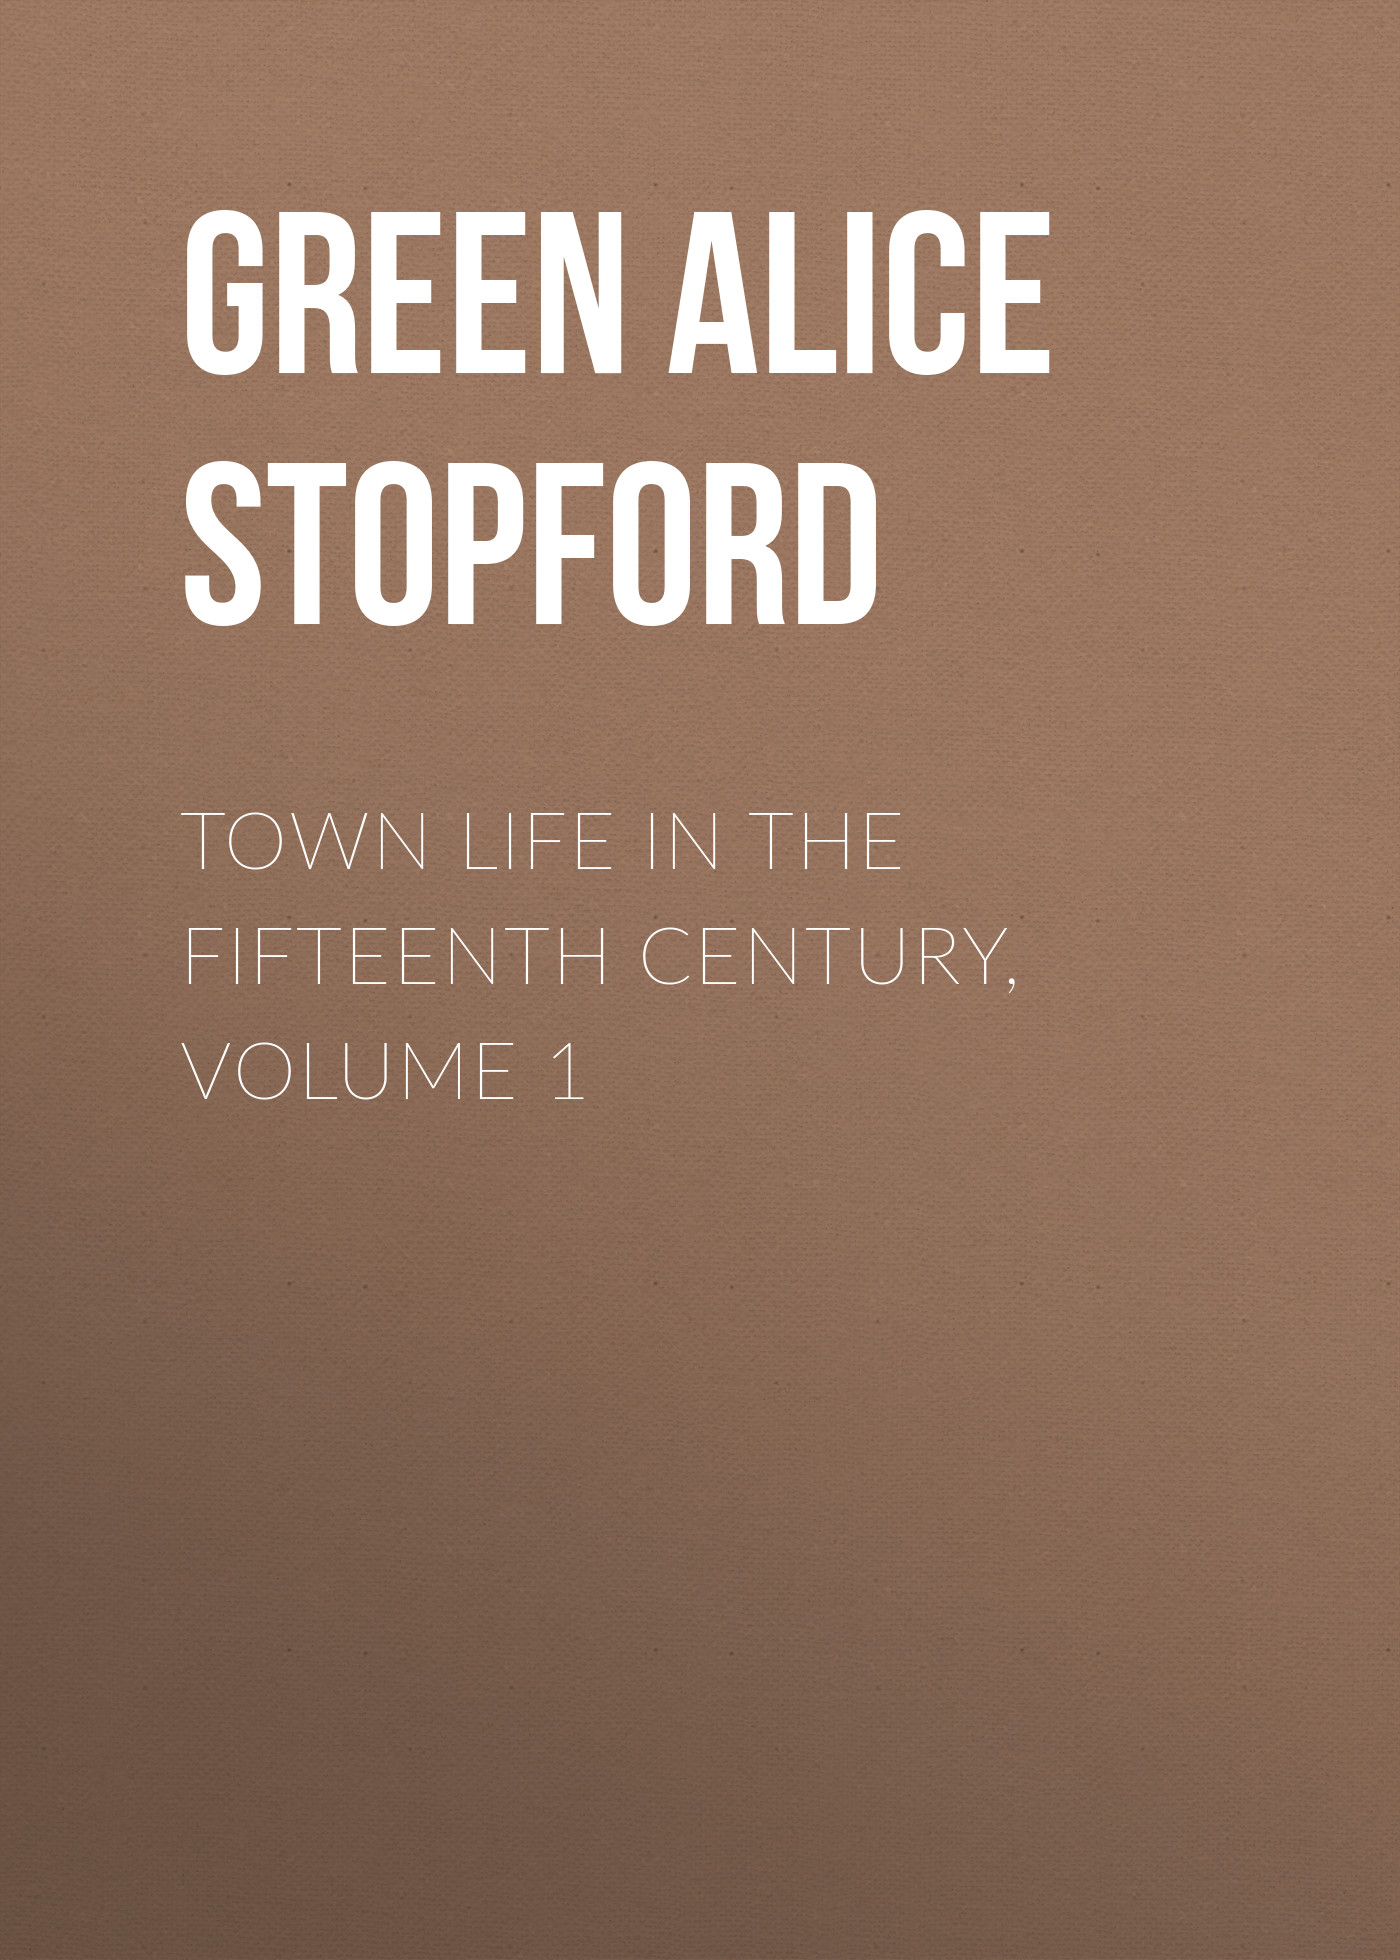 Green Alice Stopford Town Life in the Fifteenth Century, Volume 1 green alice stopford town life in the fifteenth century volume 2